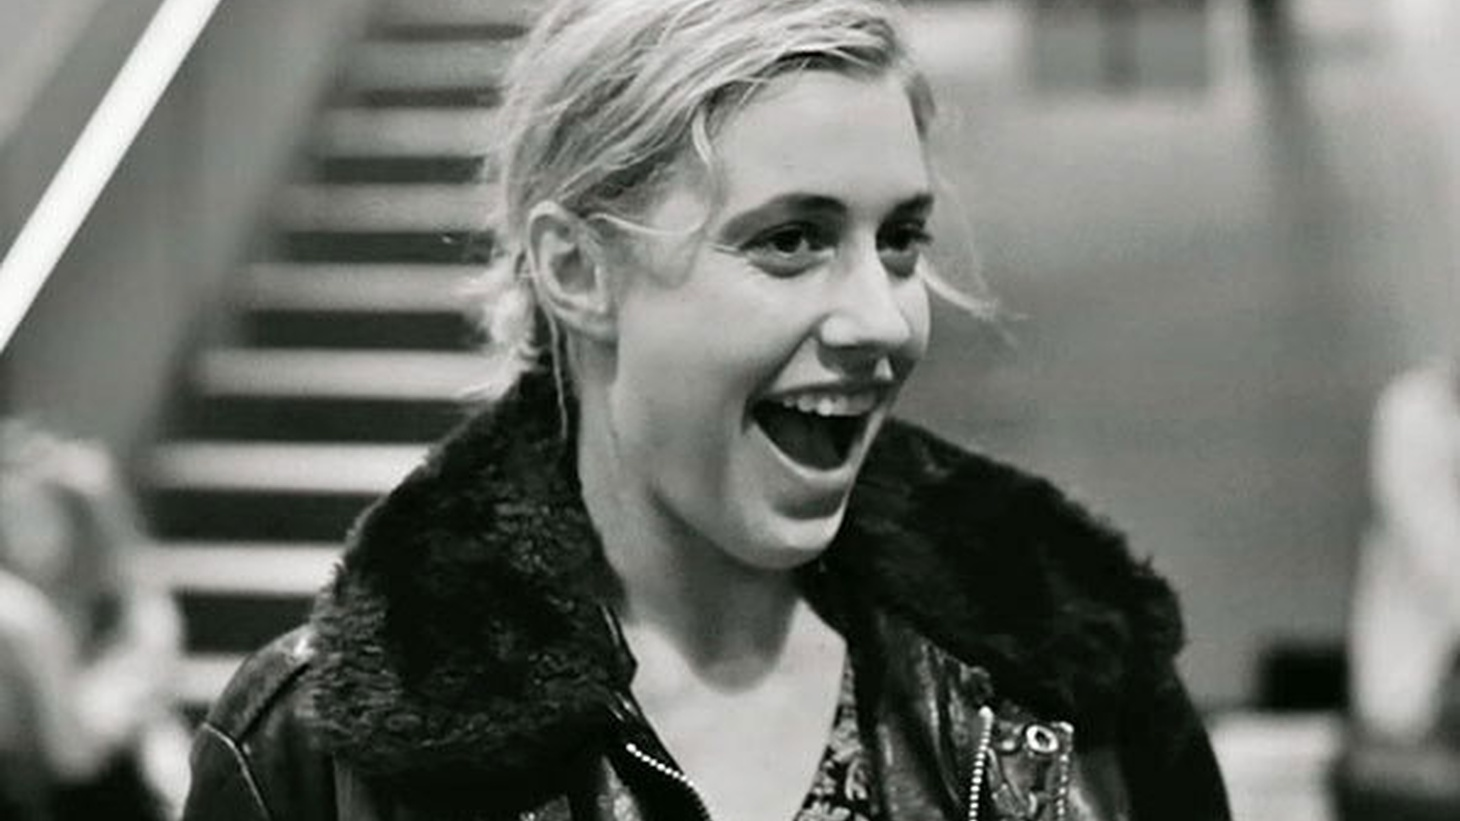 An interview with Greta Gerwig, one of the great young actresses of the 21st century.